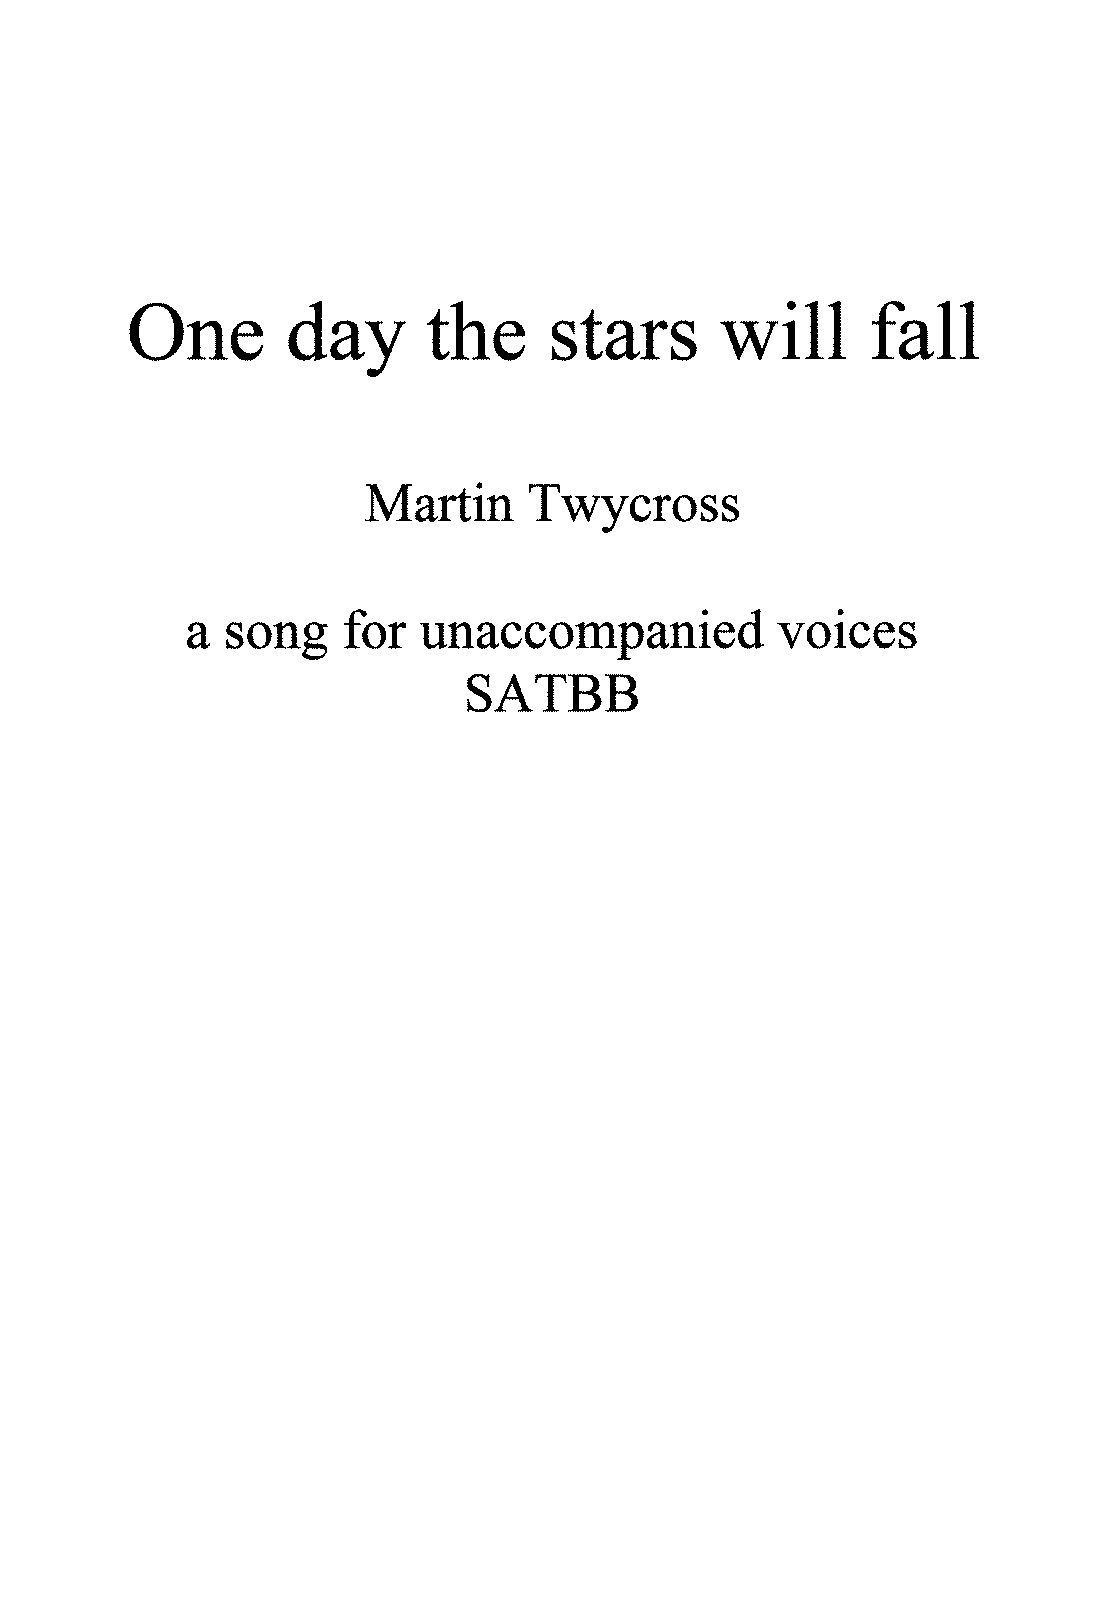 PMLP303318-One day the stars will fall (Martin Twycross).pdf